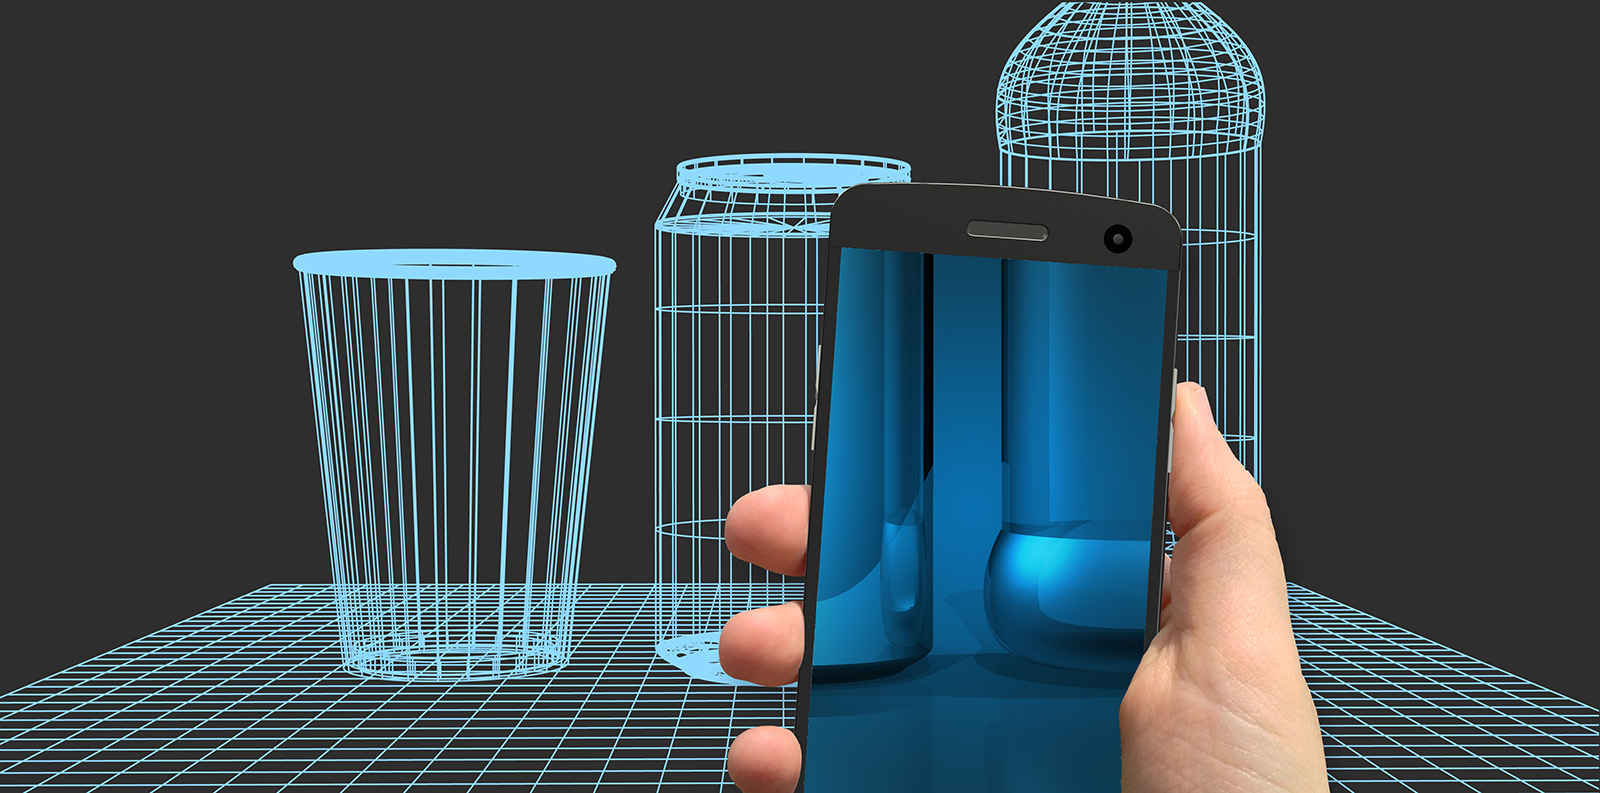 mobile device augmented reality